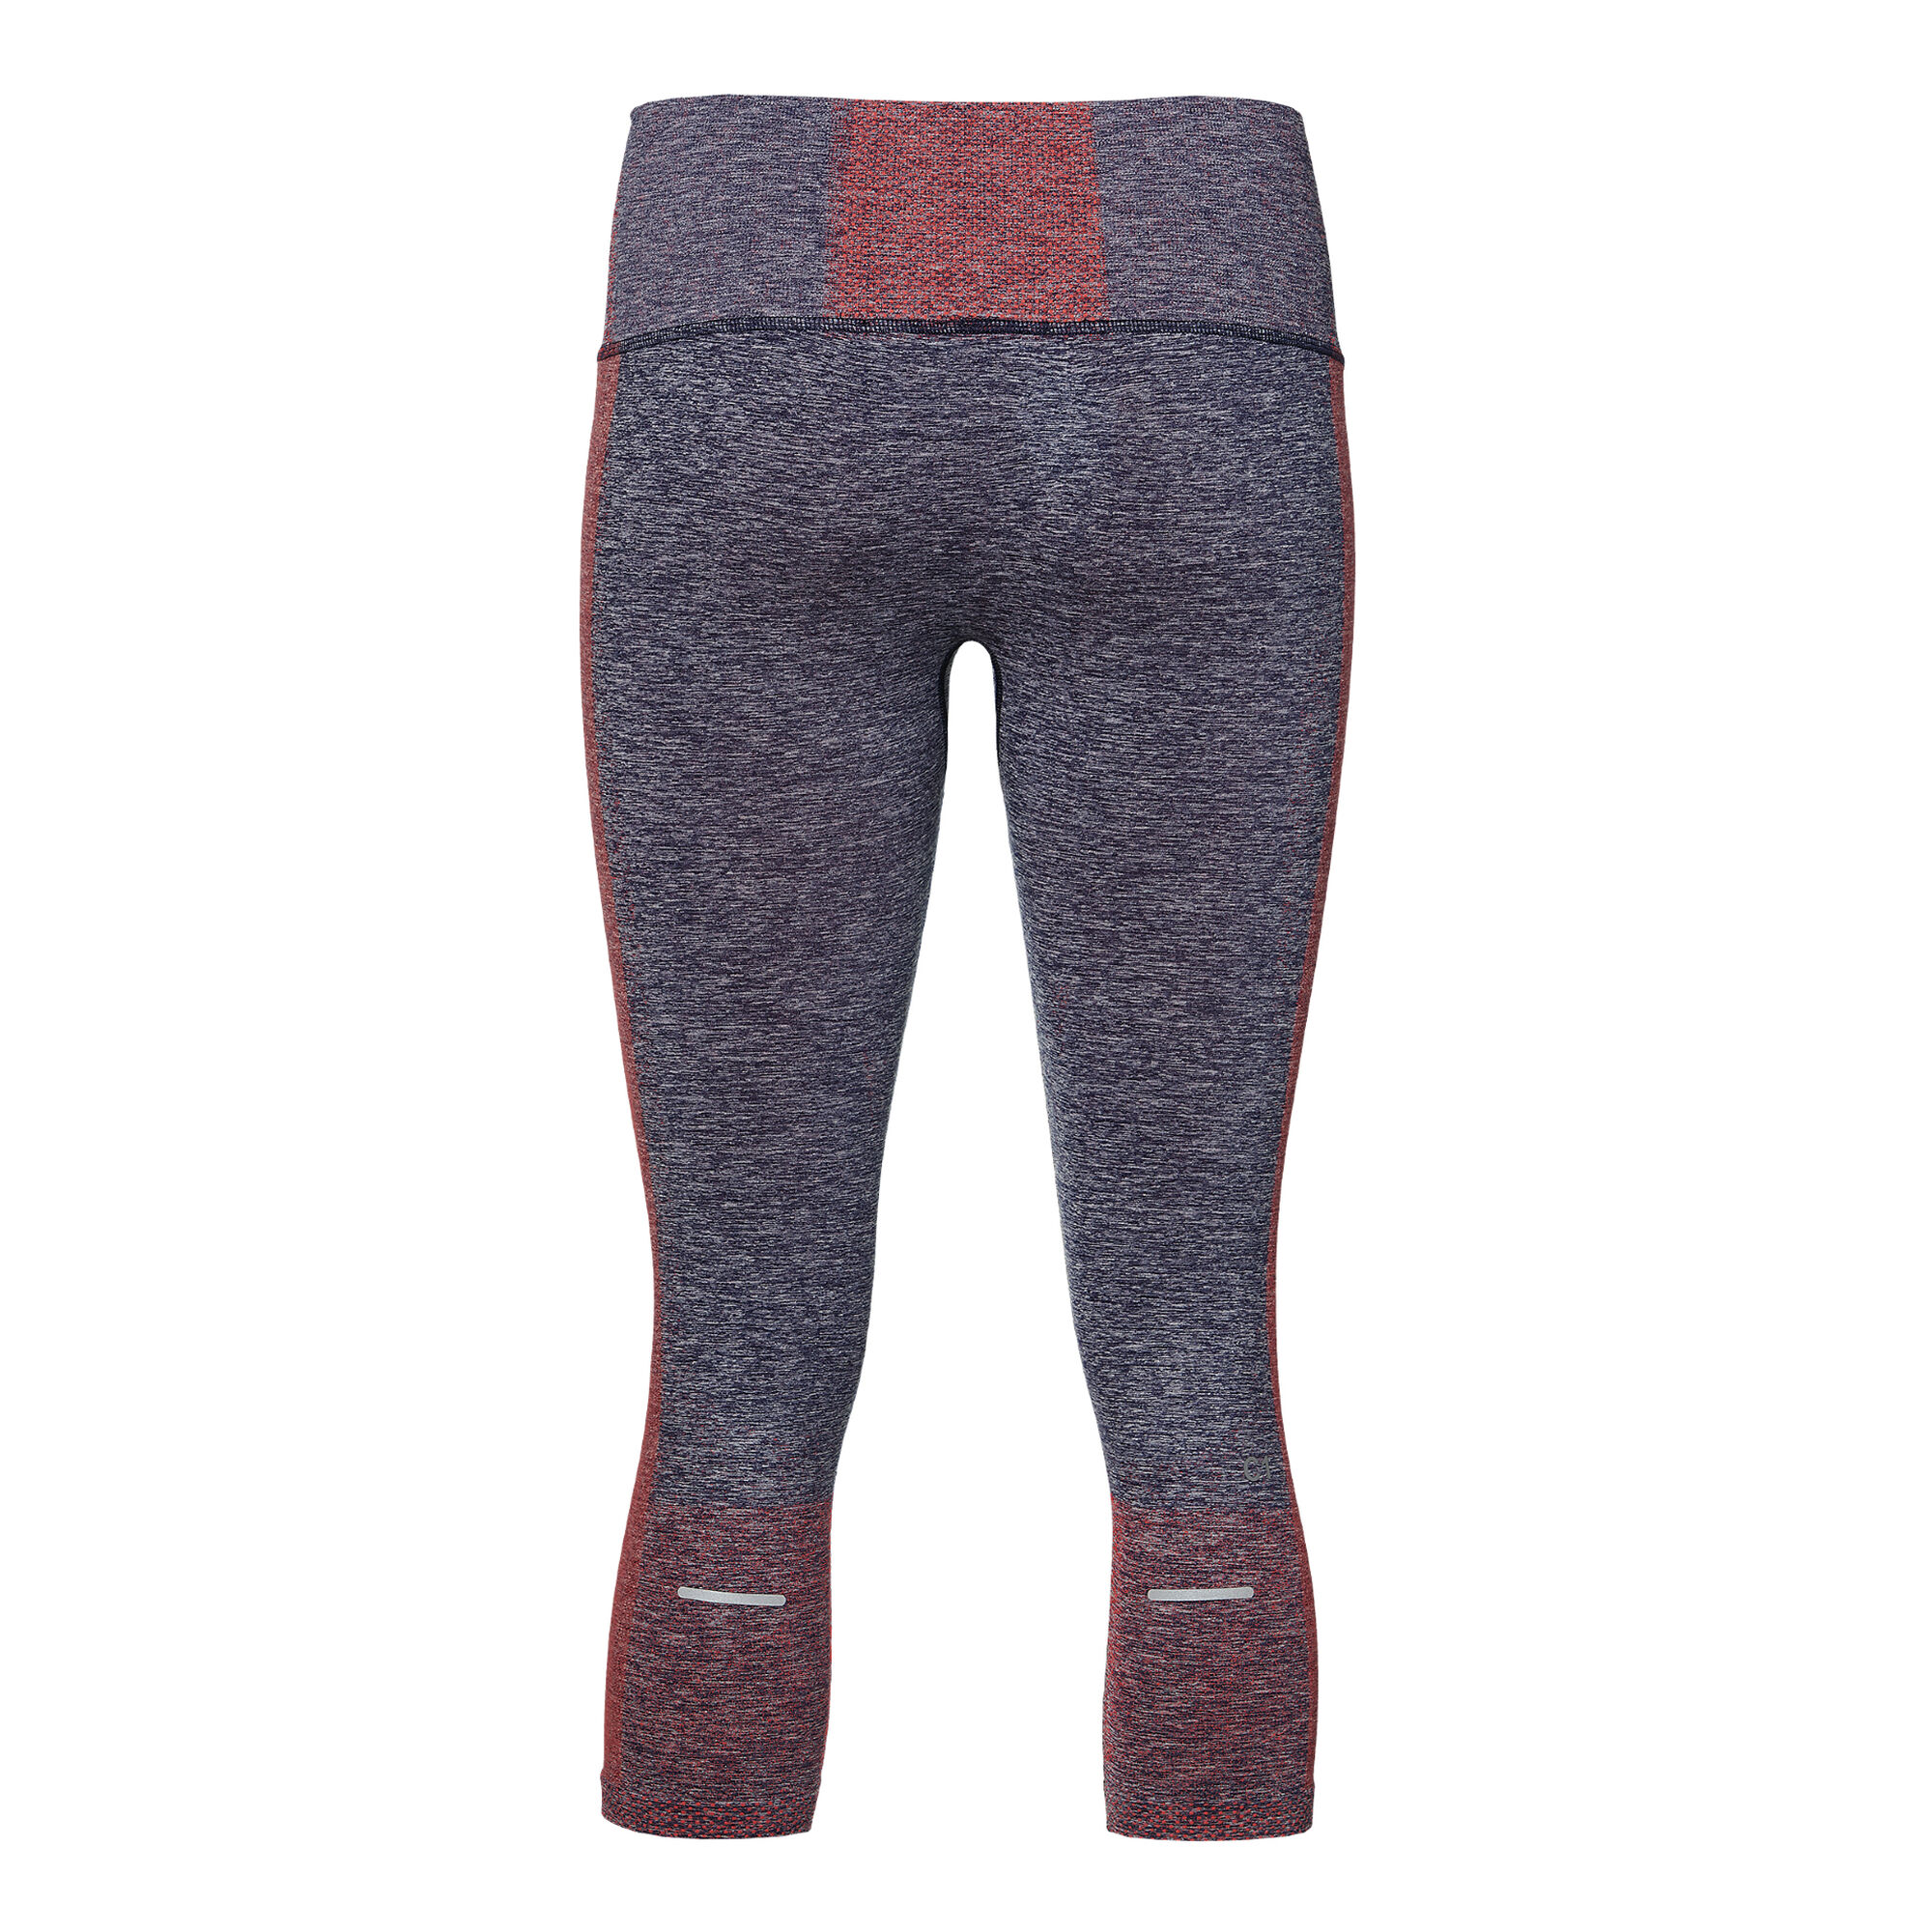 d35670fe3ccbe1 buy Asics Cool 3/4 Running Pants Women - Dark Grey, Coral online ...